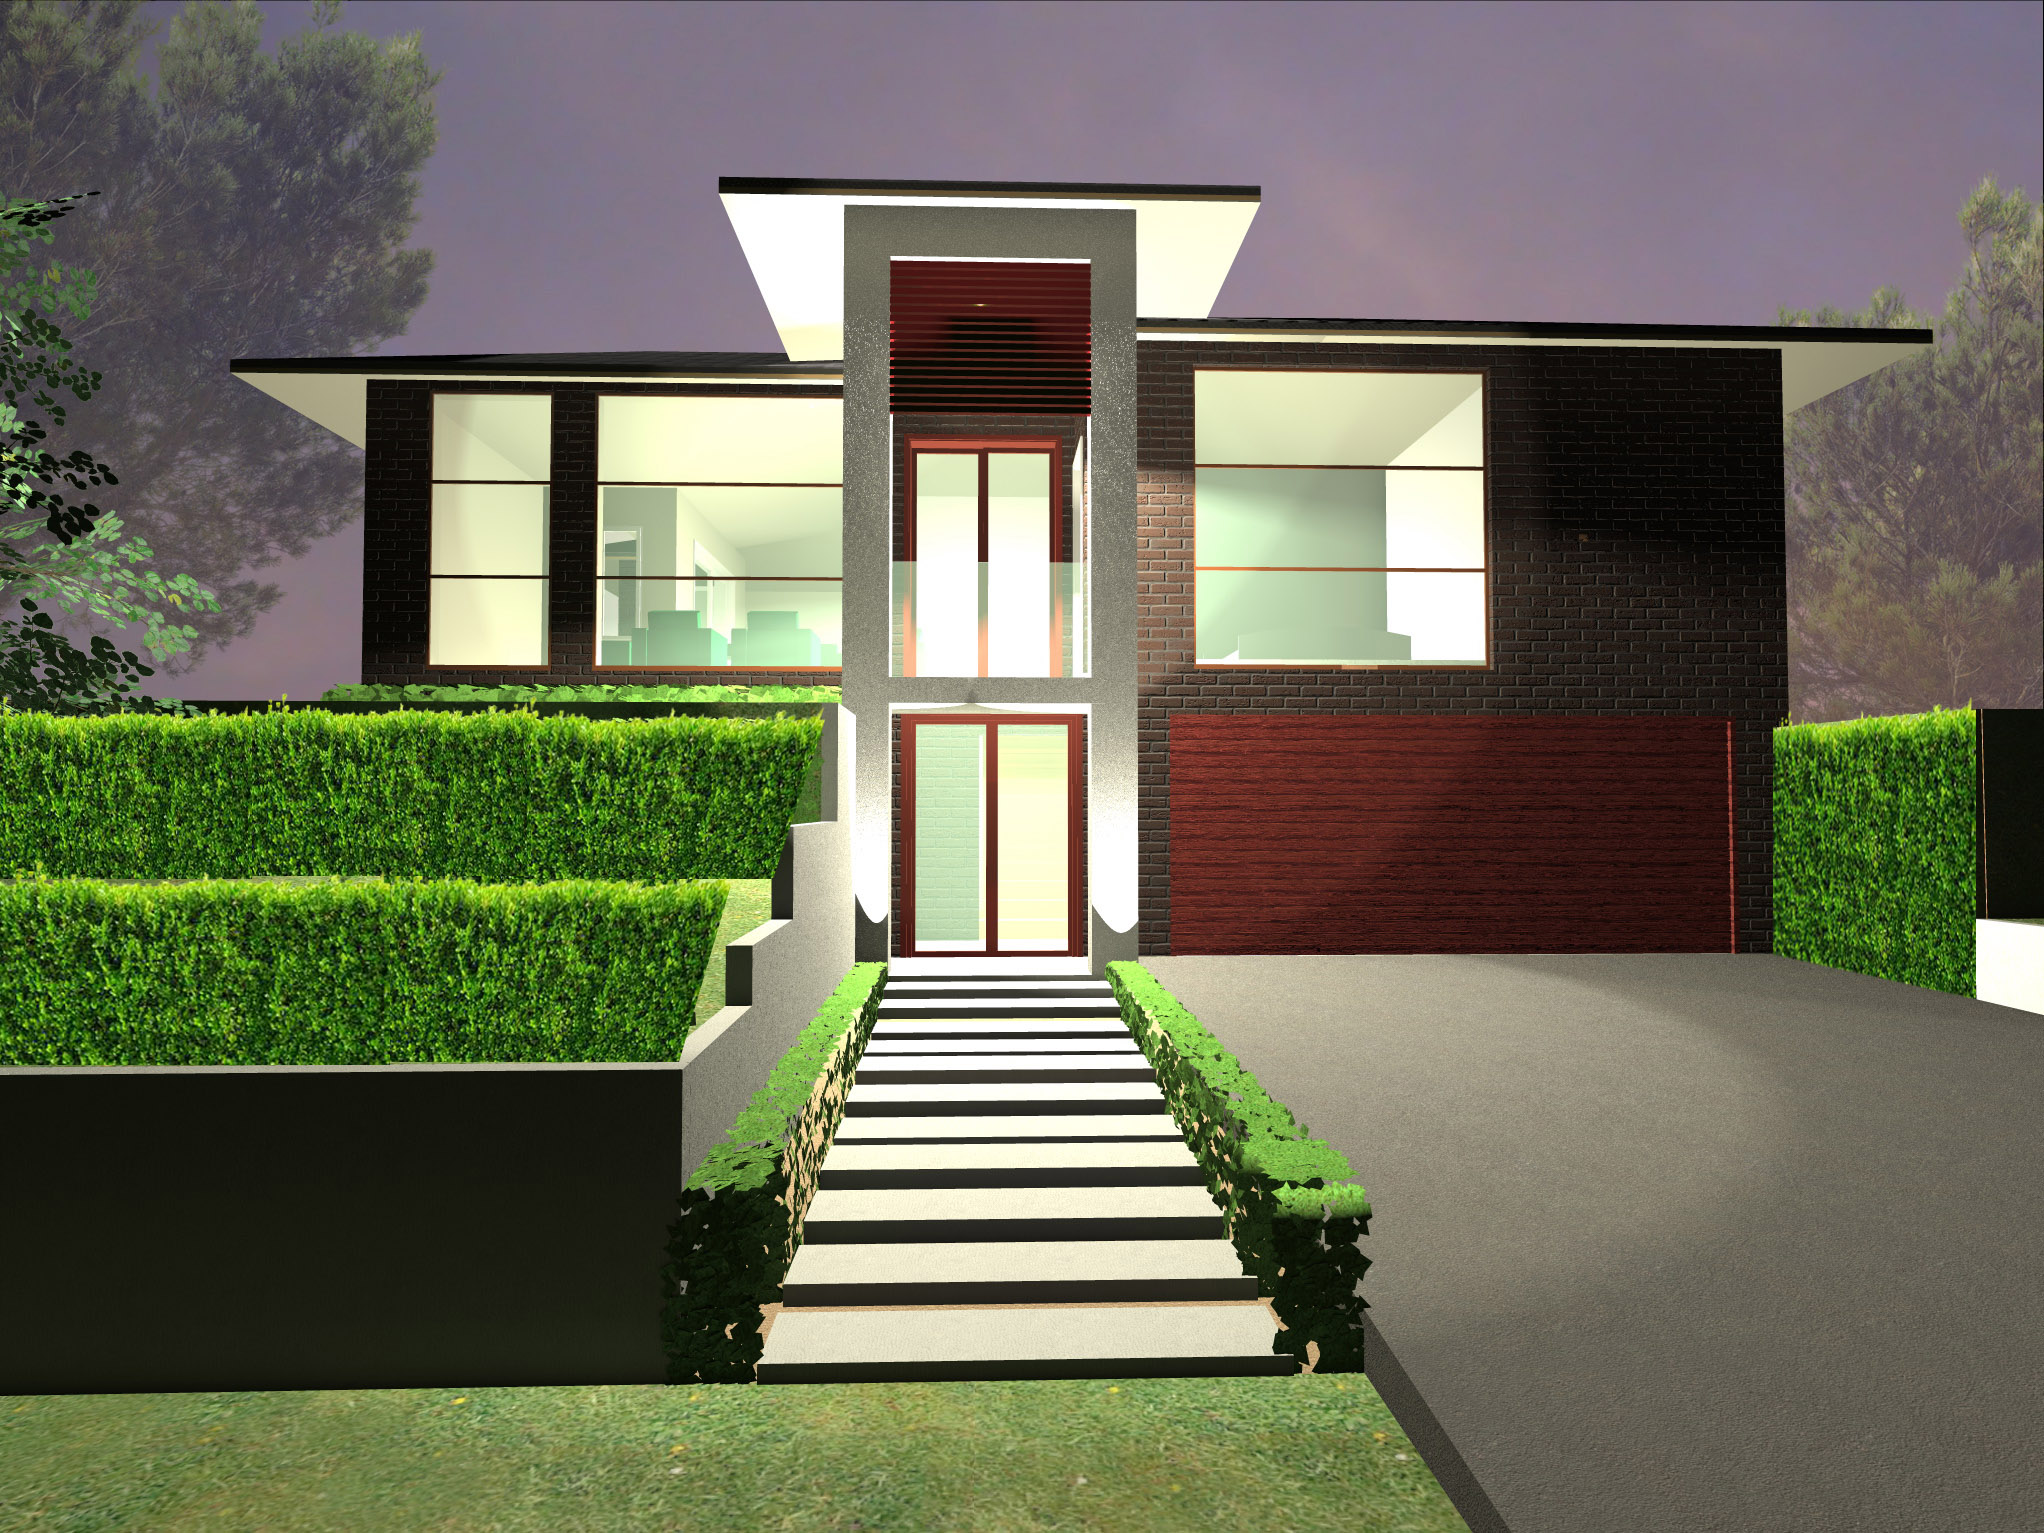 Archizen architects designing dual occupancy townhouses for Dual occupancy home designs sydney